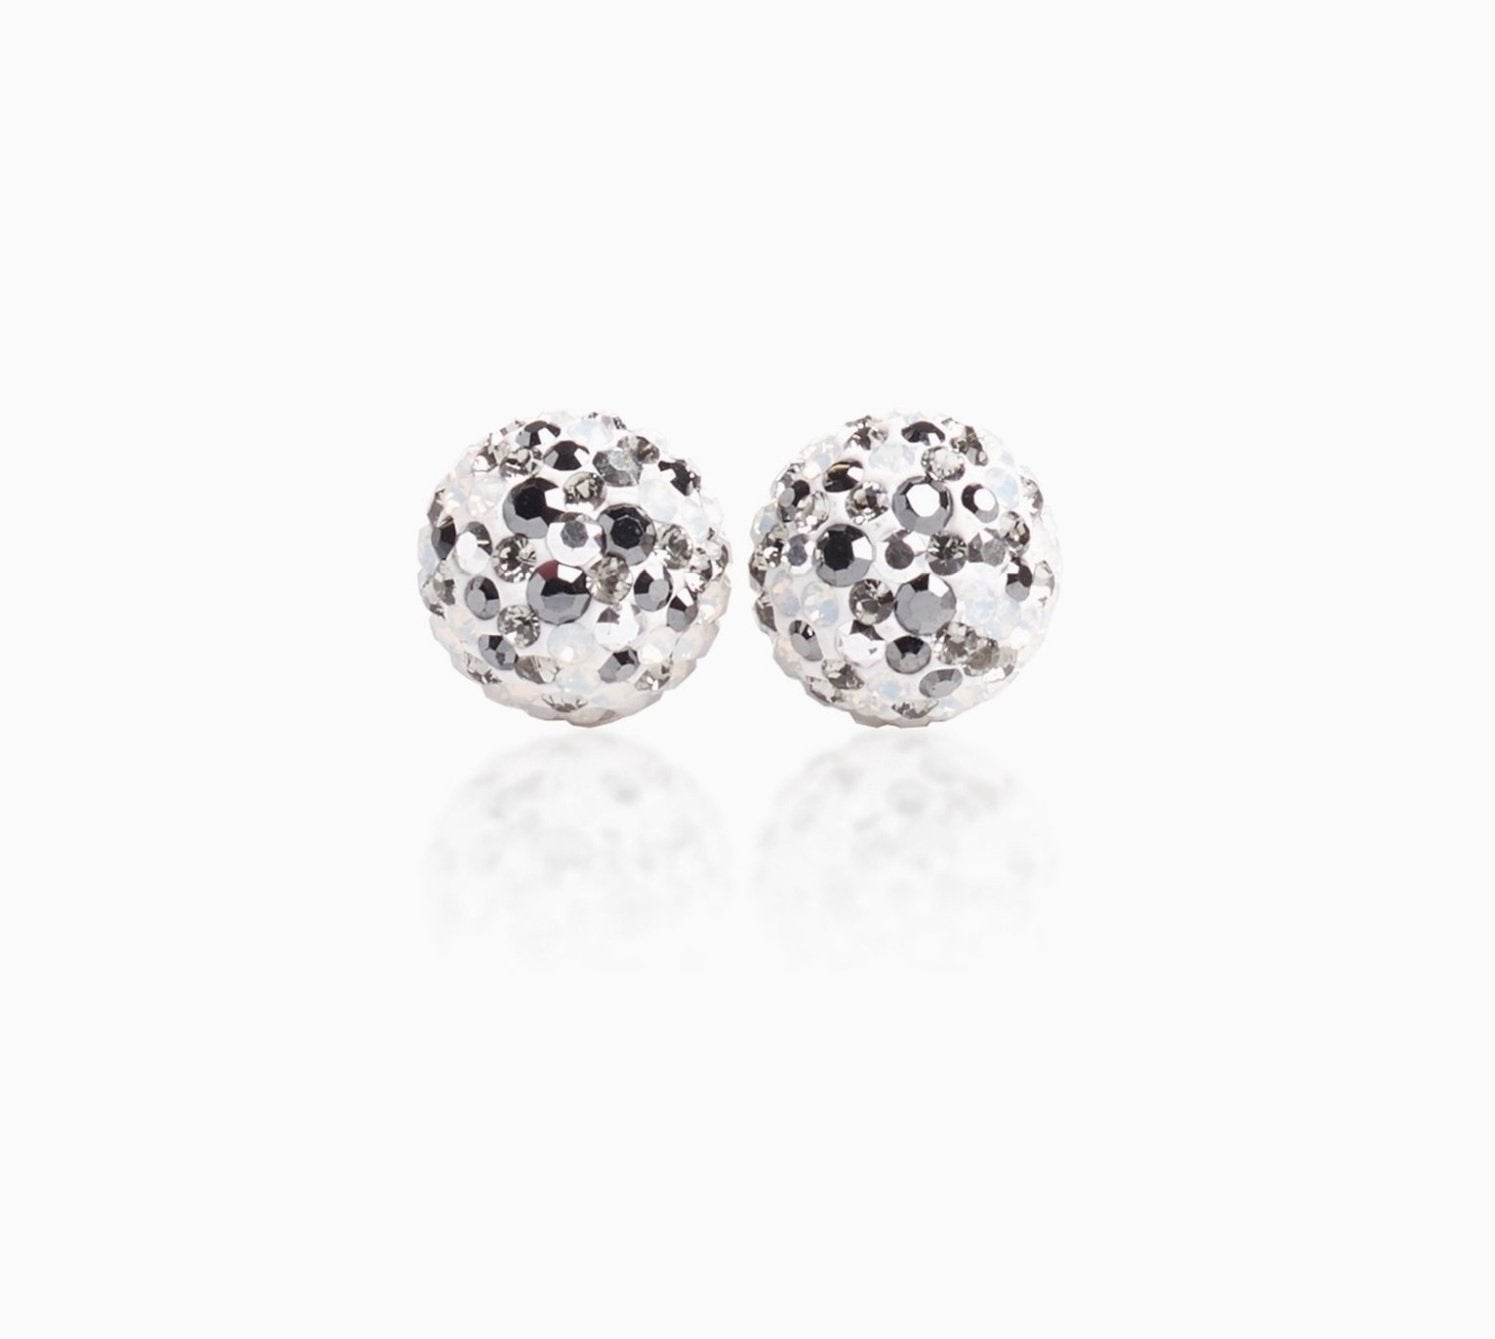 H&B Sparkle Ball™ Stud Earrings - 10mm Avalanche